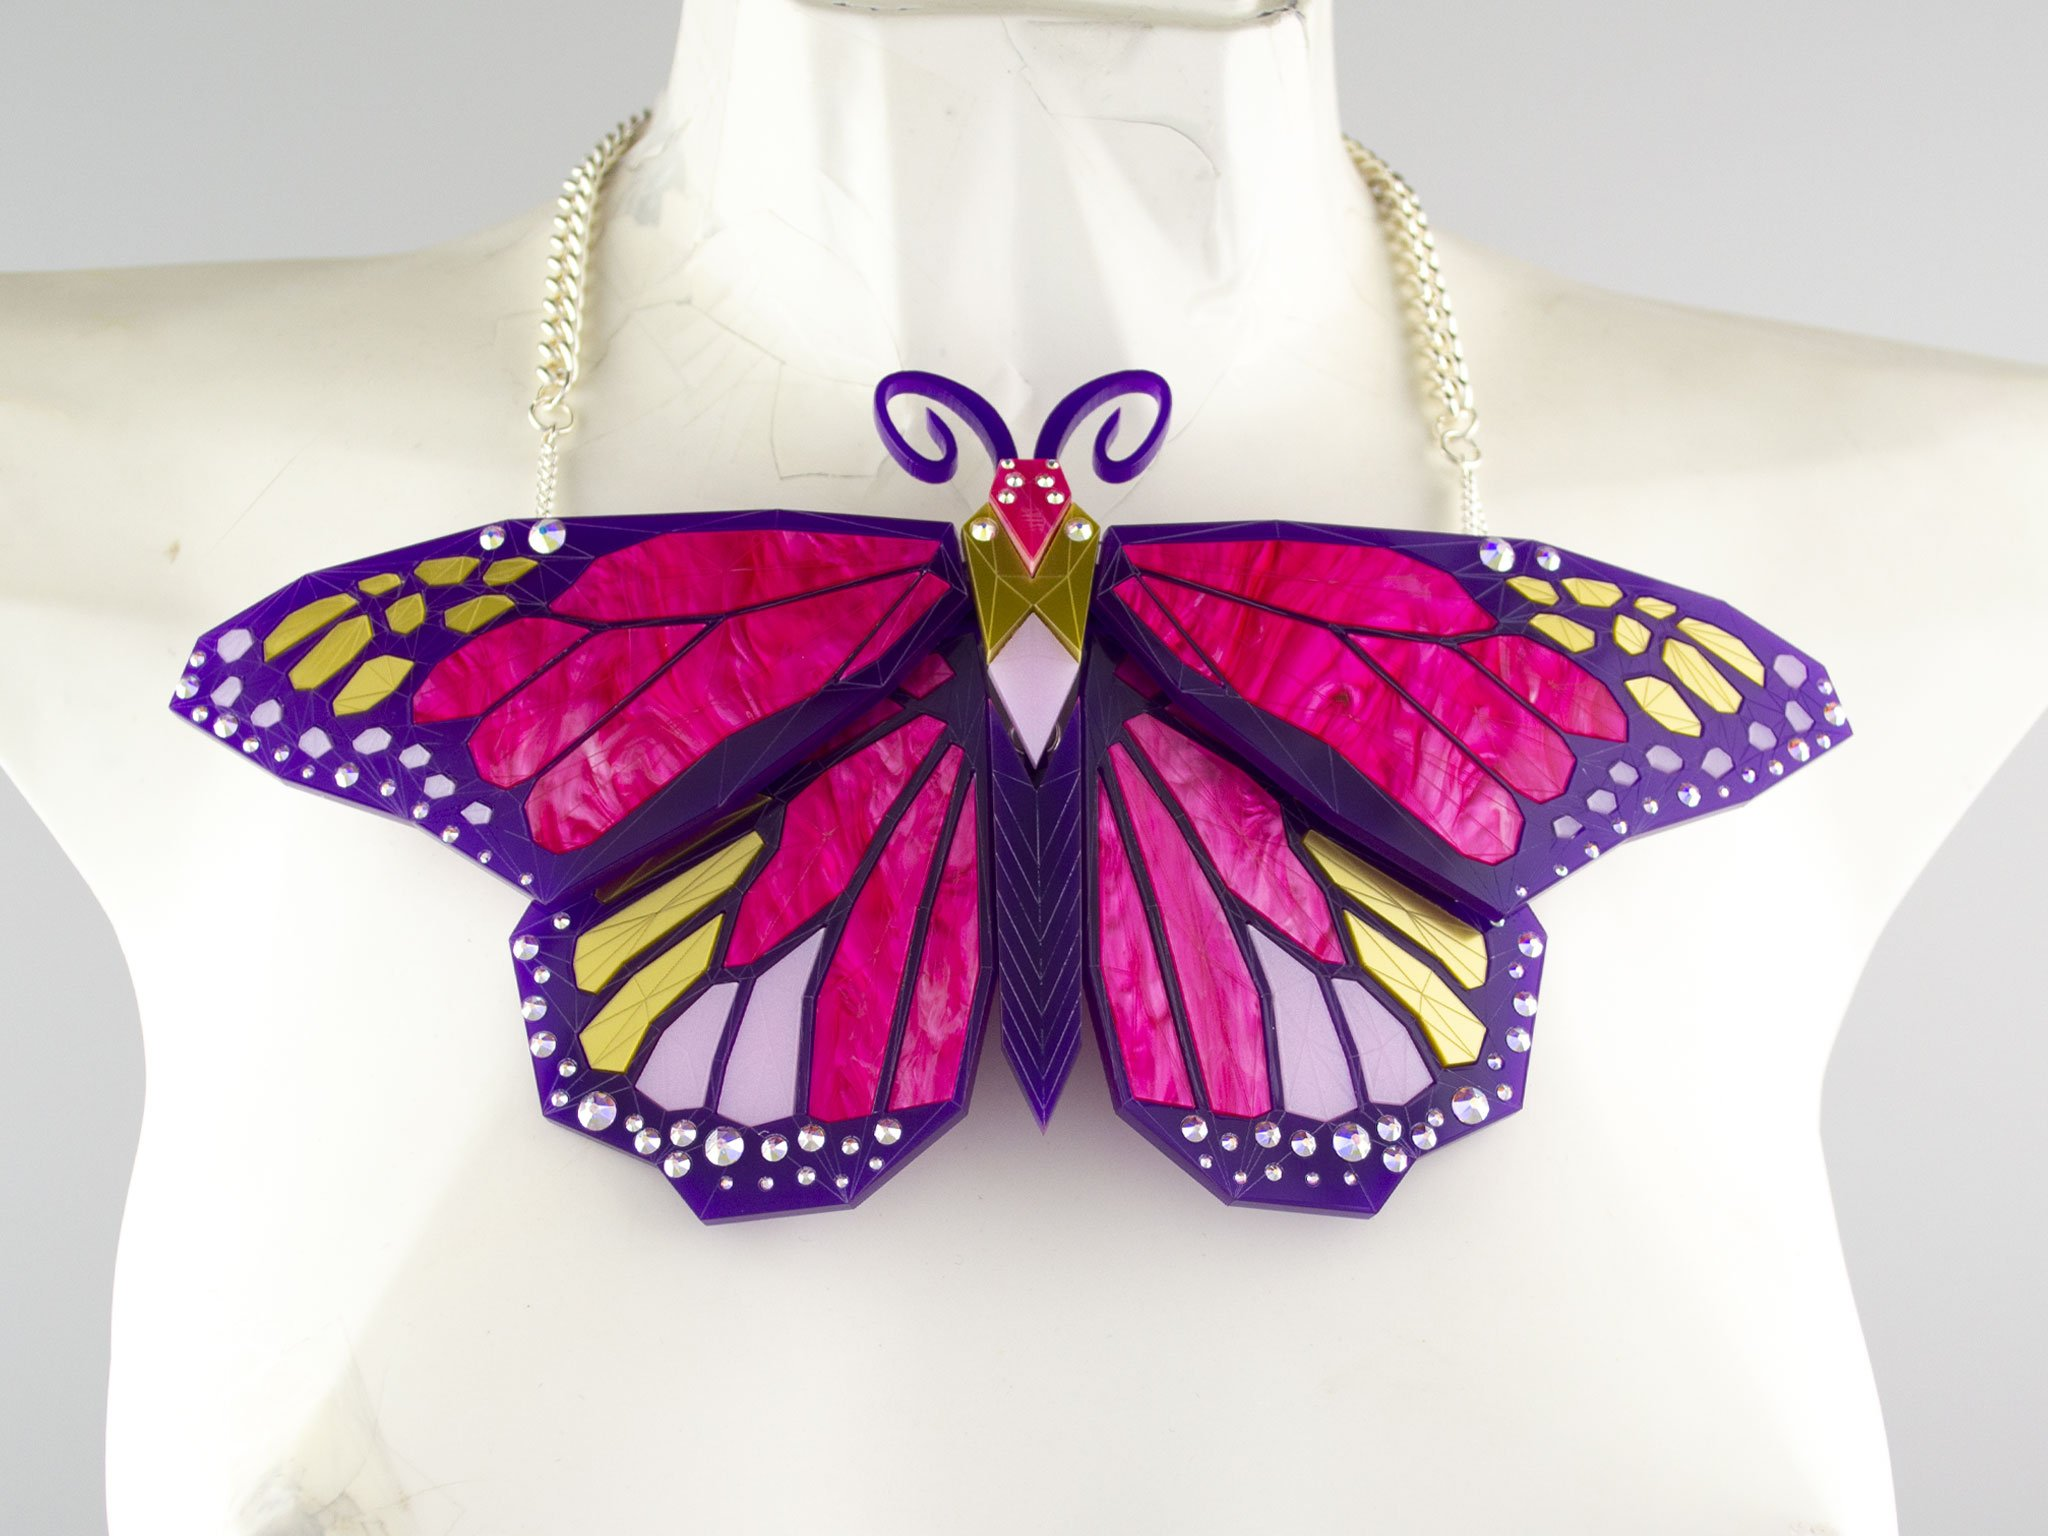 Monarch butterfly necklace - magenta jewel